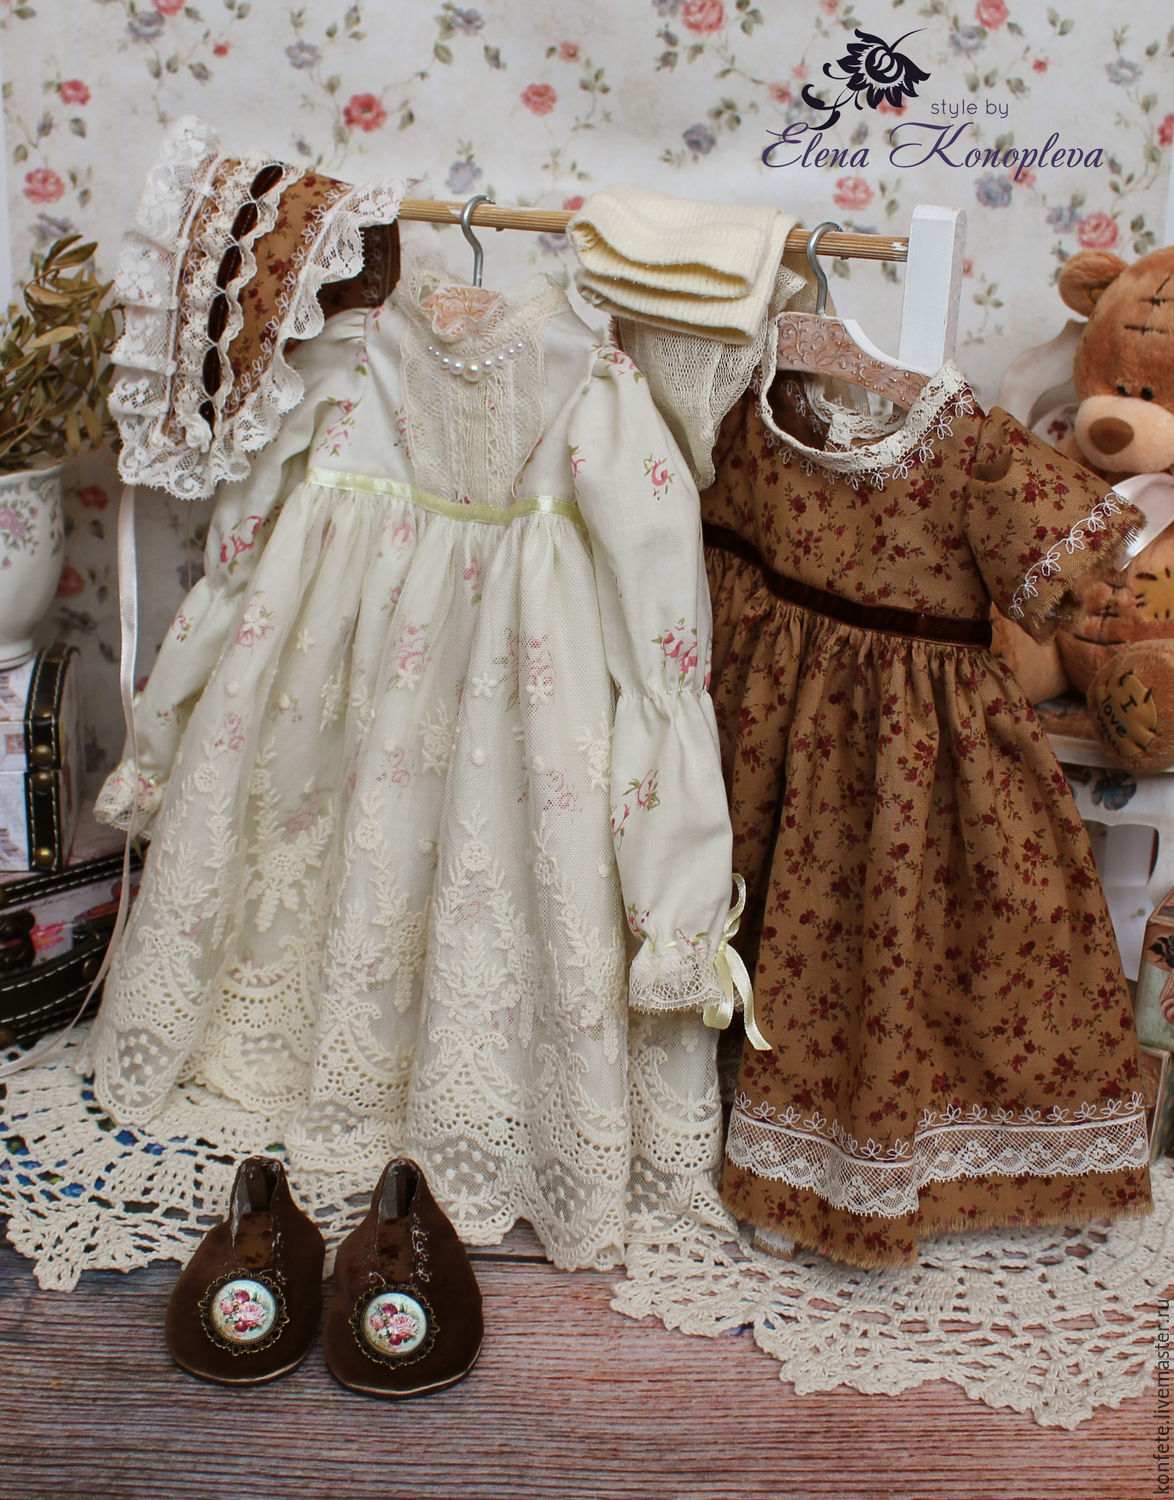 clothes for dolls outfit boho shabby chic for vasilina. Black Bedroom Furniture Sets. Home Design Ideas